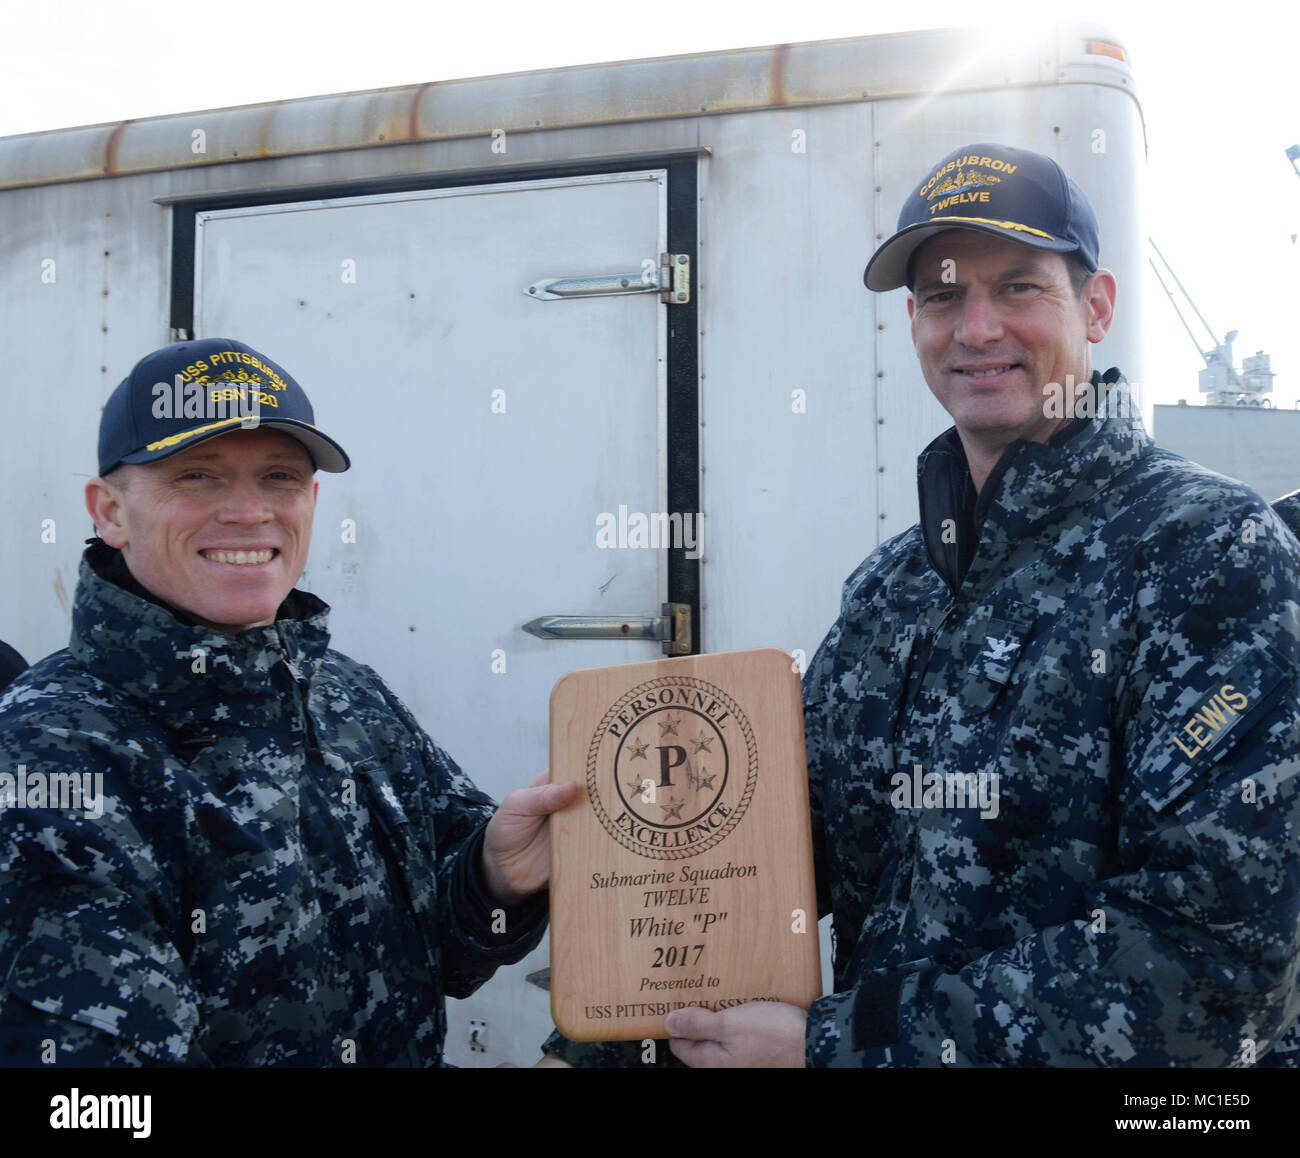 """180119-N-LW591-006 GROTON, Conn. (Jan.19, 2018) Commodore of Submarine Squadron Twelve, Capt. Ollie Lewis presented the White """"P"""" Personnel Readiness plaque to the nuclear-powered, Los Angeles class, fast-attack submarine, USS Pittsburgh (SSN 720), Commanding Officer,  Cmdr. Jason Deichler, Friday, Jan. 19, 2018 onboard Submarine Base New London, Groton, Conn. The award was given to Pittsburgh for the crew's outstanding personnel readiness. The White """"P"""" Personnel Readiness award is part of the Battle Efficiency Competition that's conducted to strengthen and evaluate both command and overall f - Stock Image"""